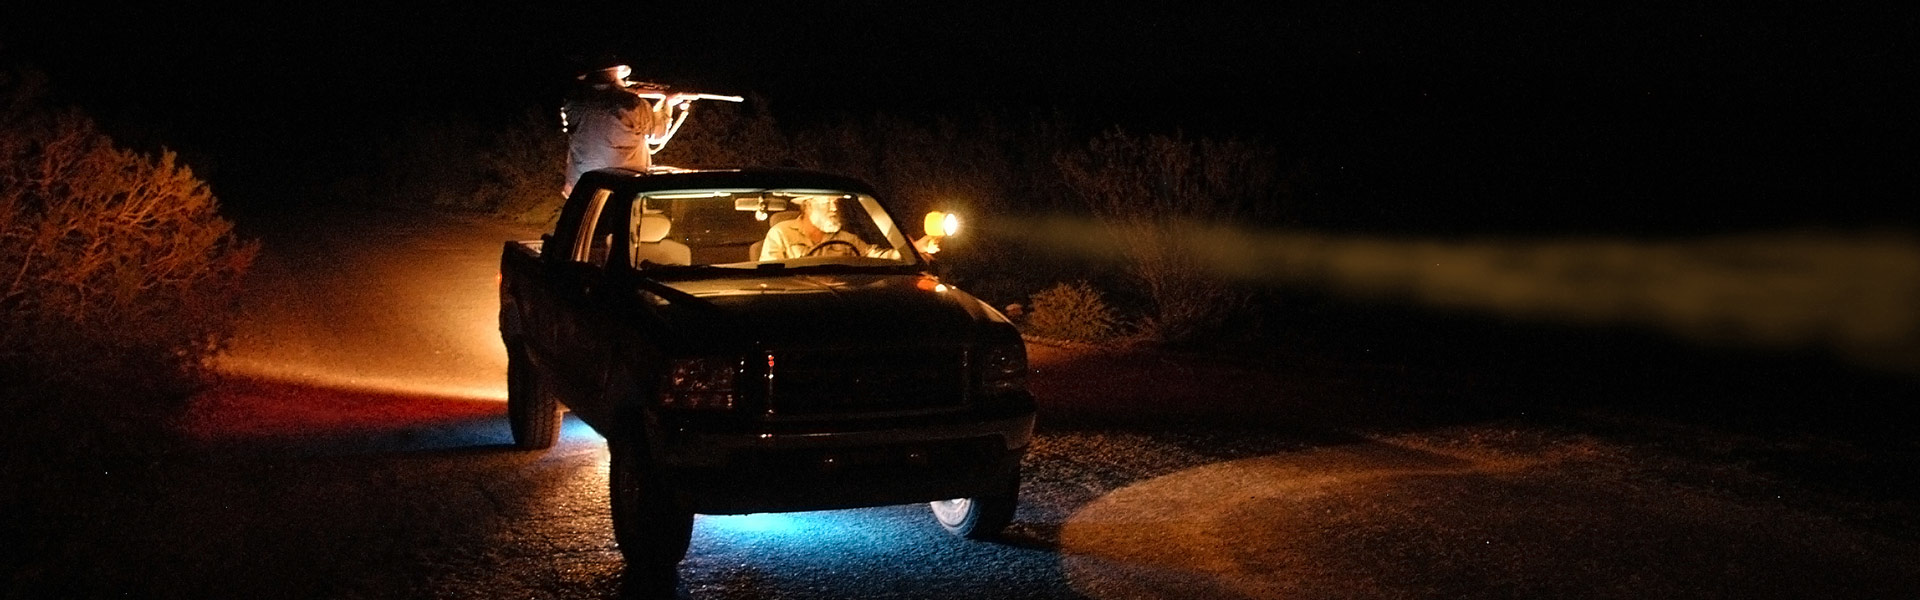 FWP wardens in a truck using lights to look out into a field at night.